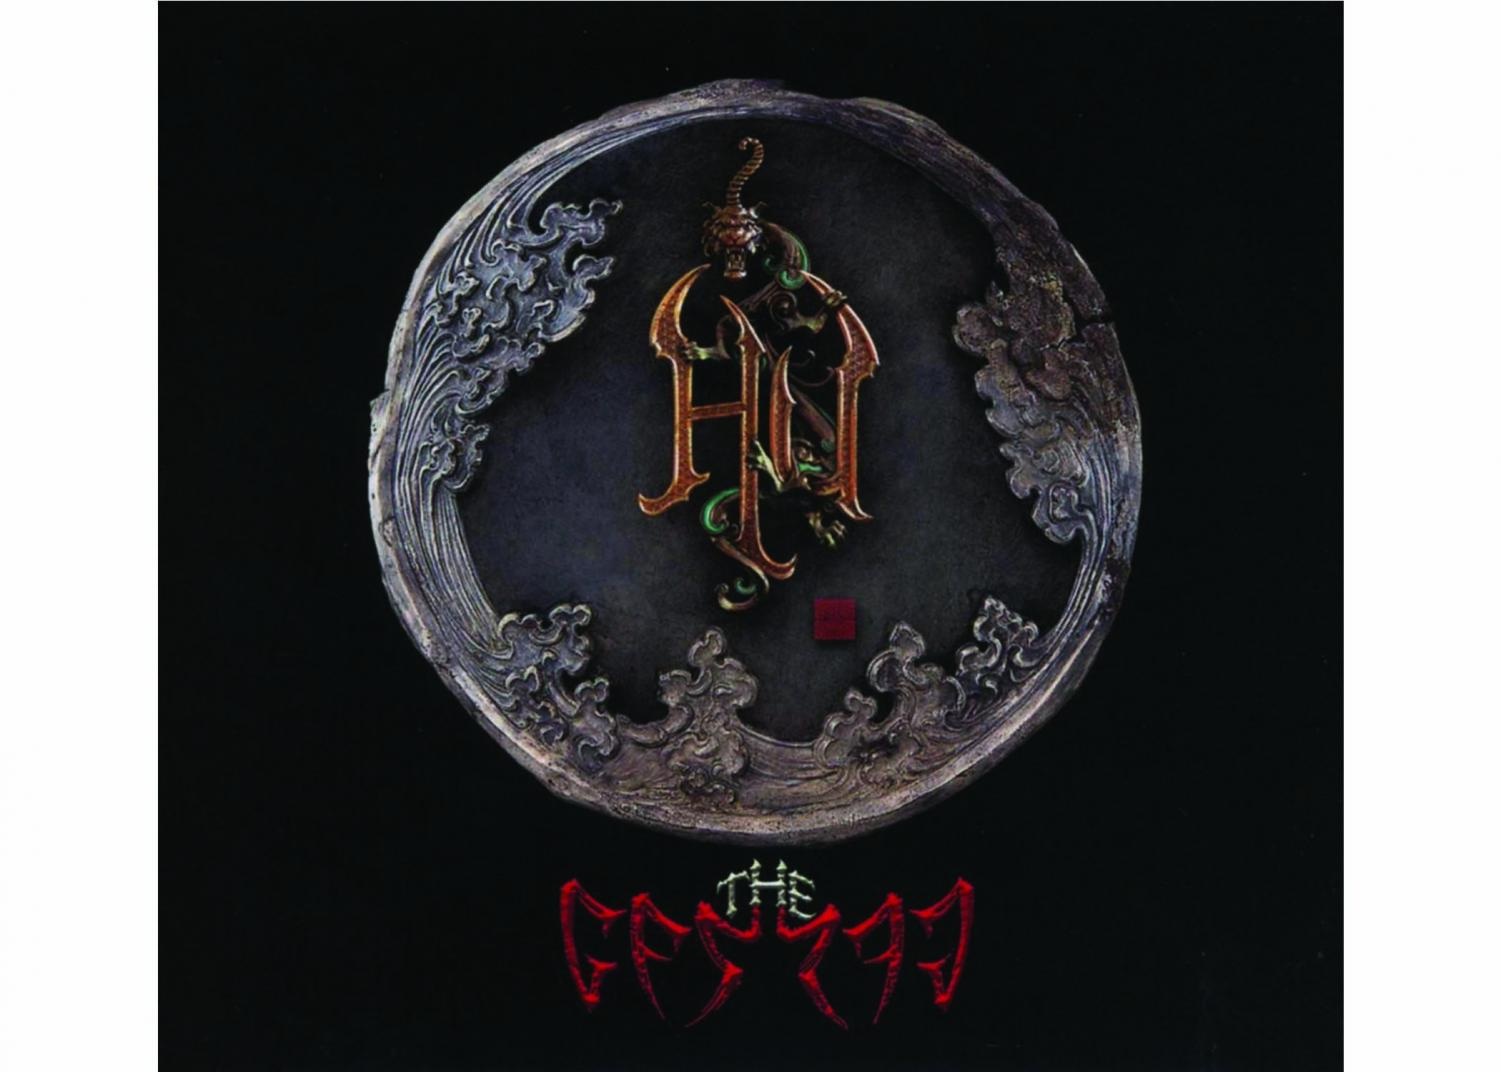 """""""The Gereg"""" by The HU. According to their website, the band has been working on this album since their founding in 2016. """"Gereg"""" is a Mongolian word originating from Genghis Khan times. """"Gereg"""" was apparently a diplomatic passport used during the Mongol Empire."""